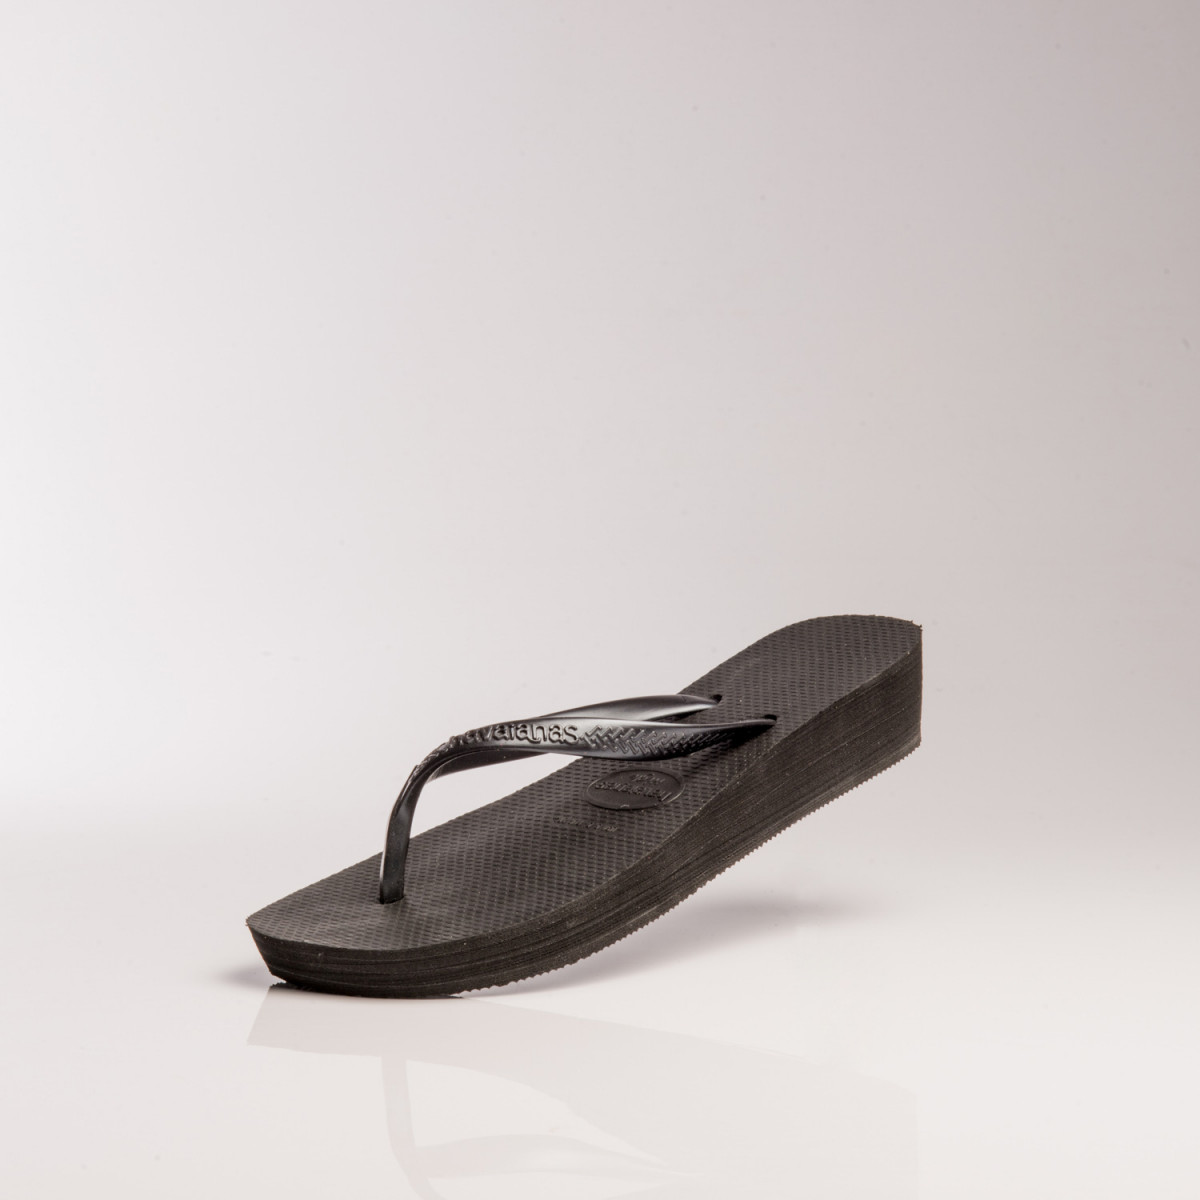 OJOTAS HAVAIANAS HIGH LIGHT